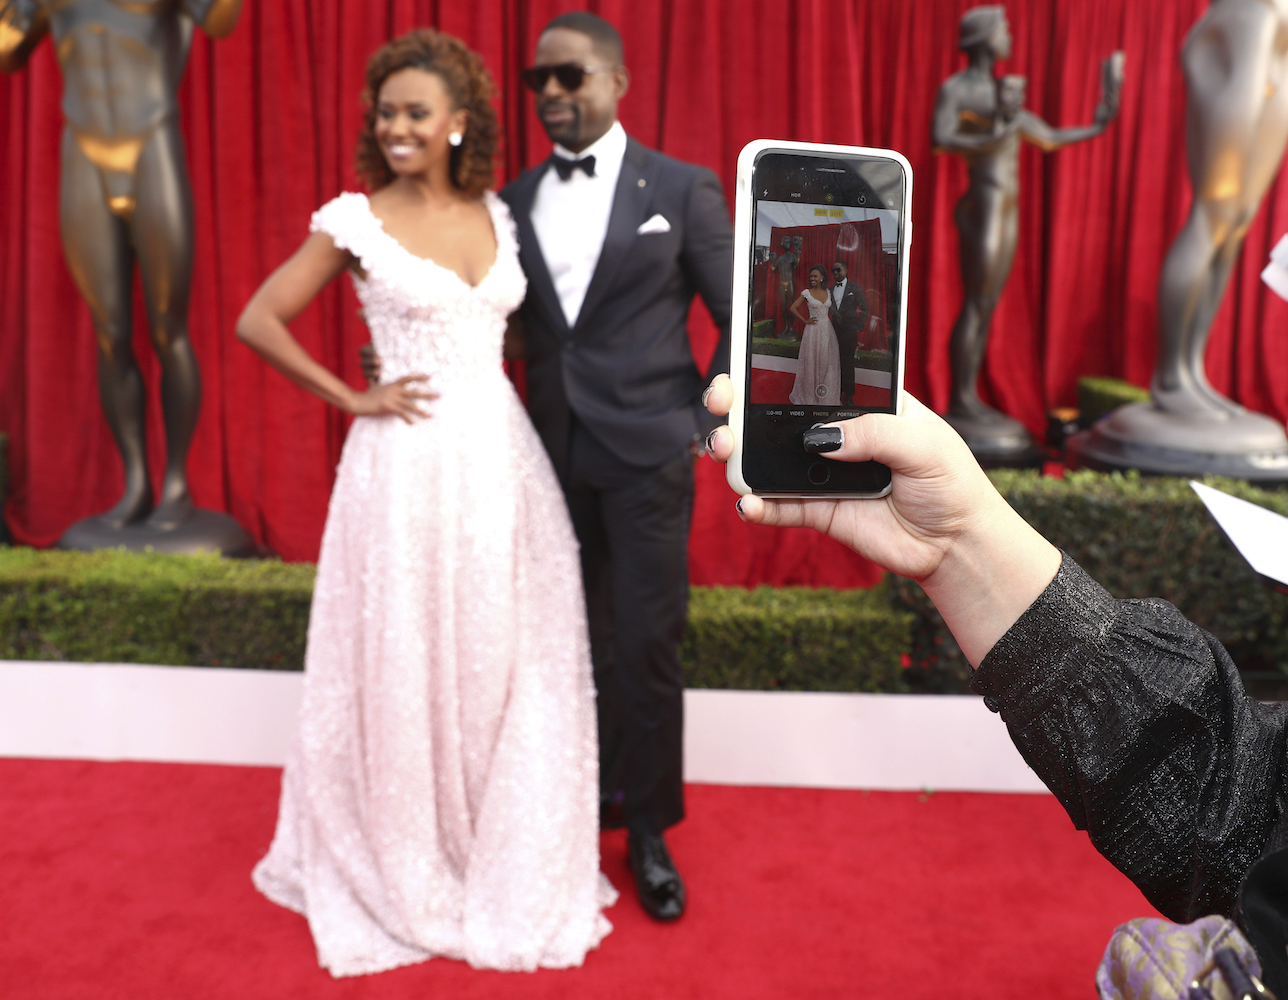 <div class='meta'><div class='origin-logo' data-origin='AP'></div><span class='caption-text' data-credit='Matt Sayles/Invision/AP'>A guest takes a photo of Sterling K. Brown, right, and Ryan Michelle Bathe at the 24th annual Screen Actors Guild Awards.</span></div>